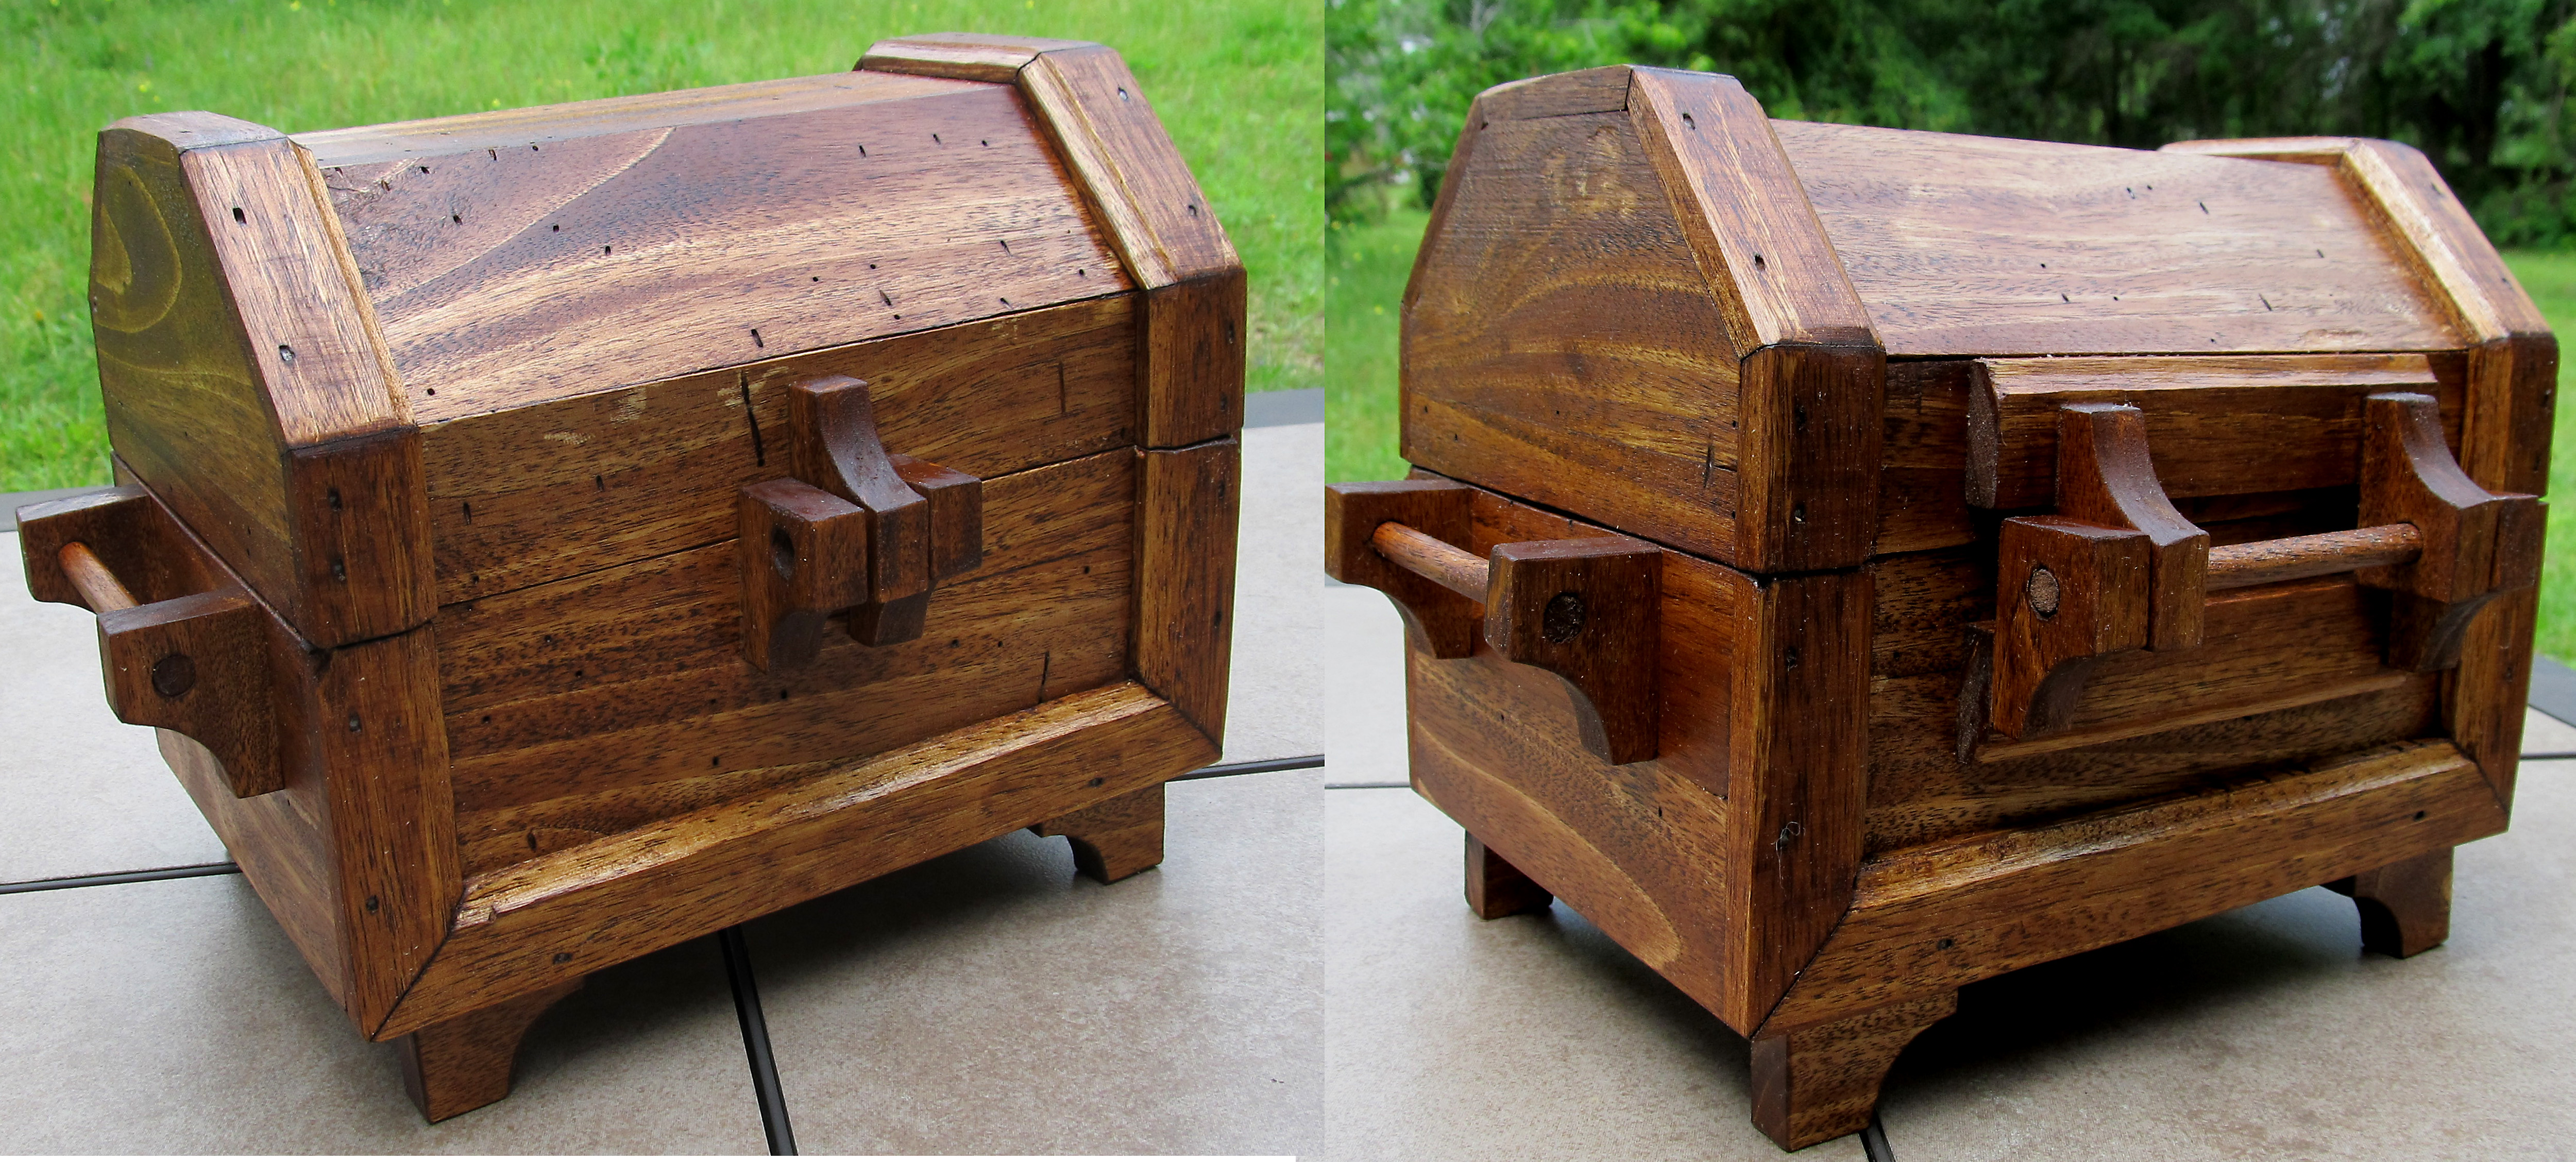 Superior All Wood Treasure Chest By Zimzim1066 All Wood Treasure Chest By Zimzim1066